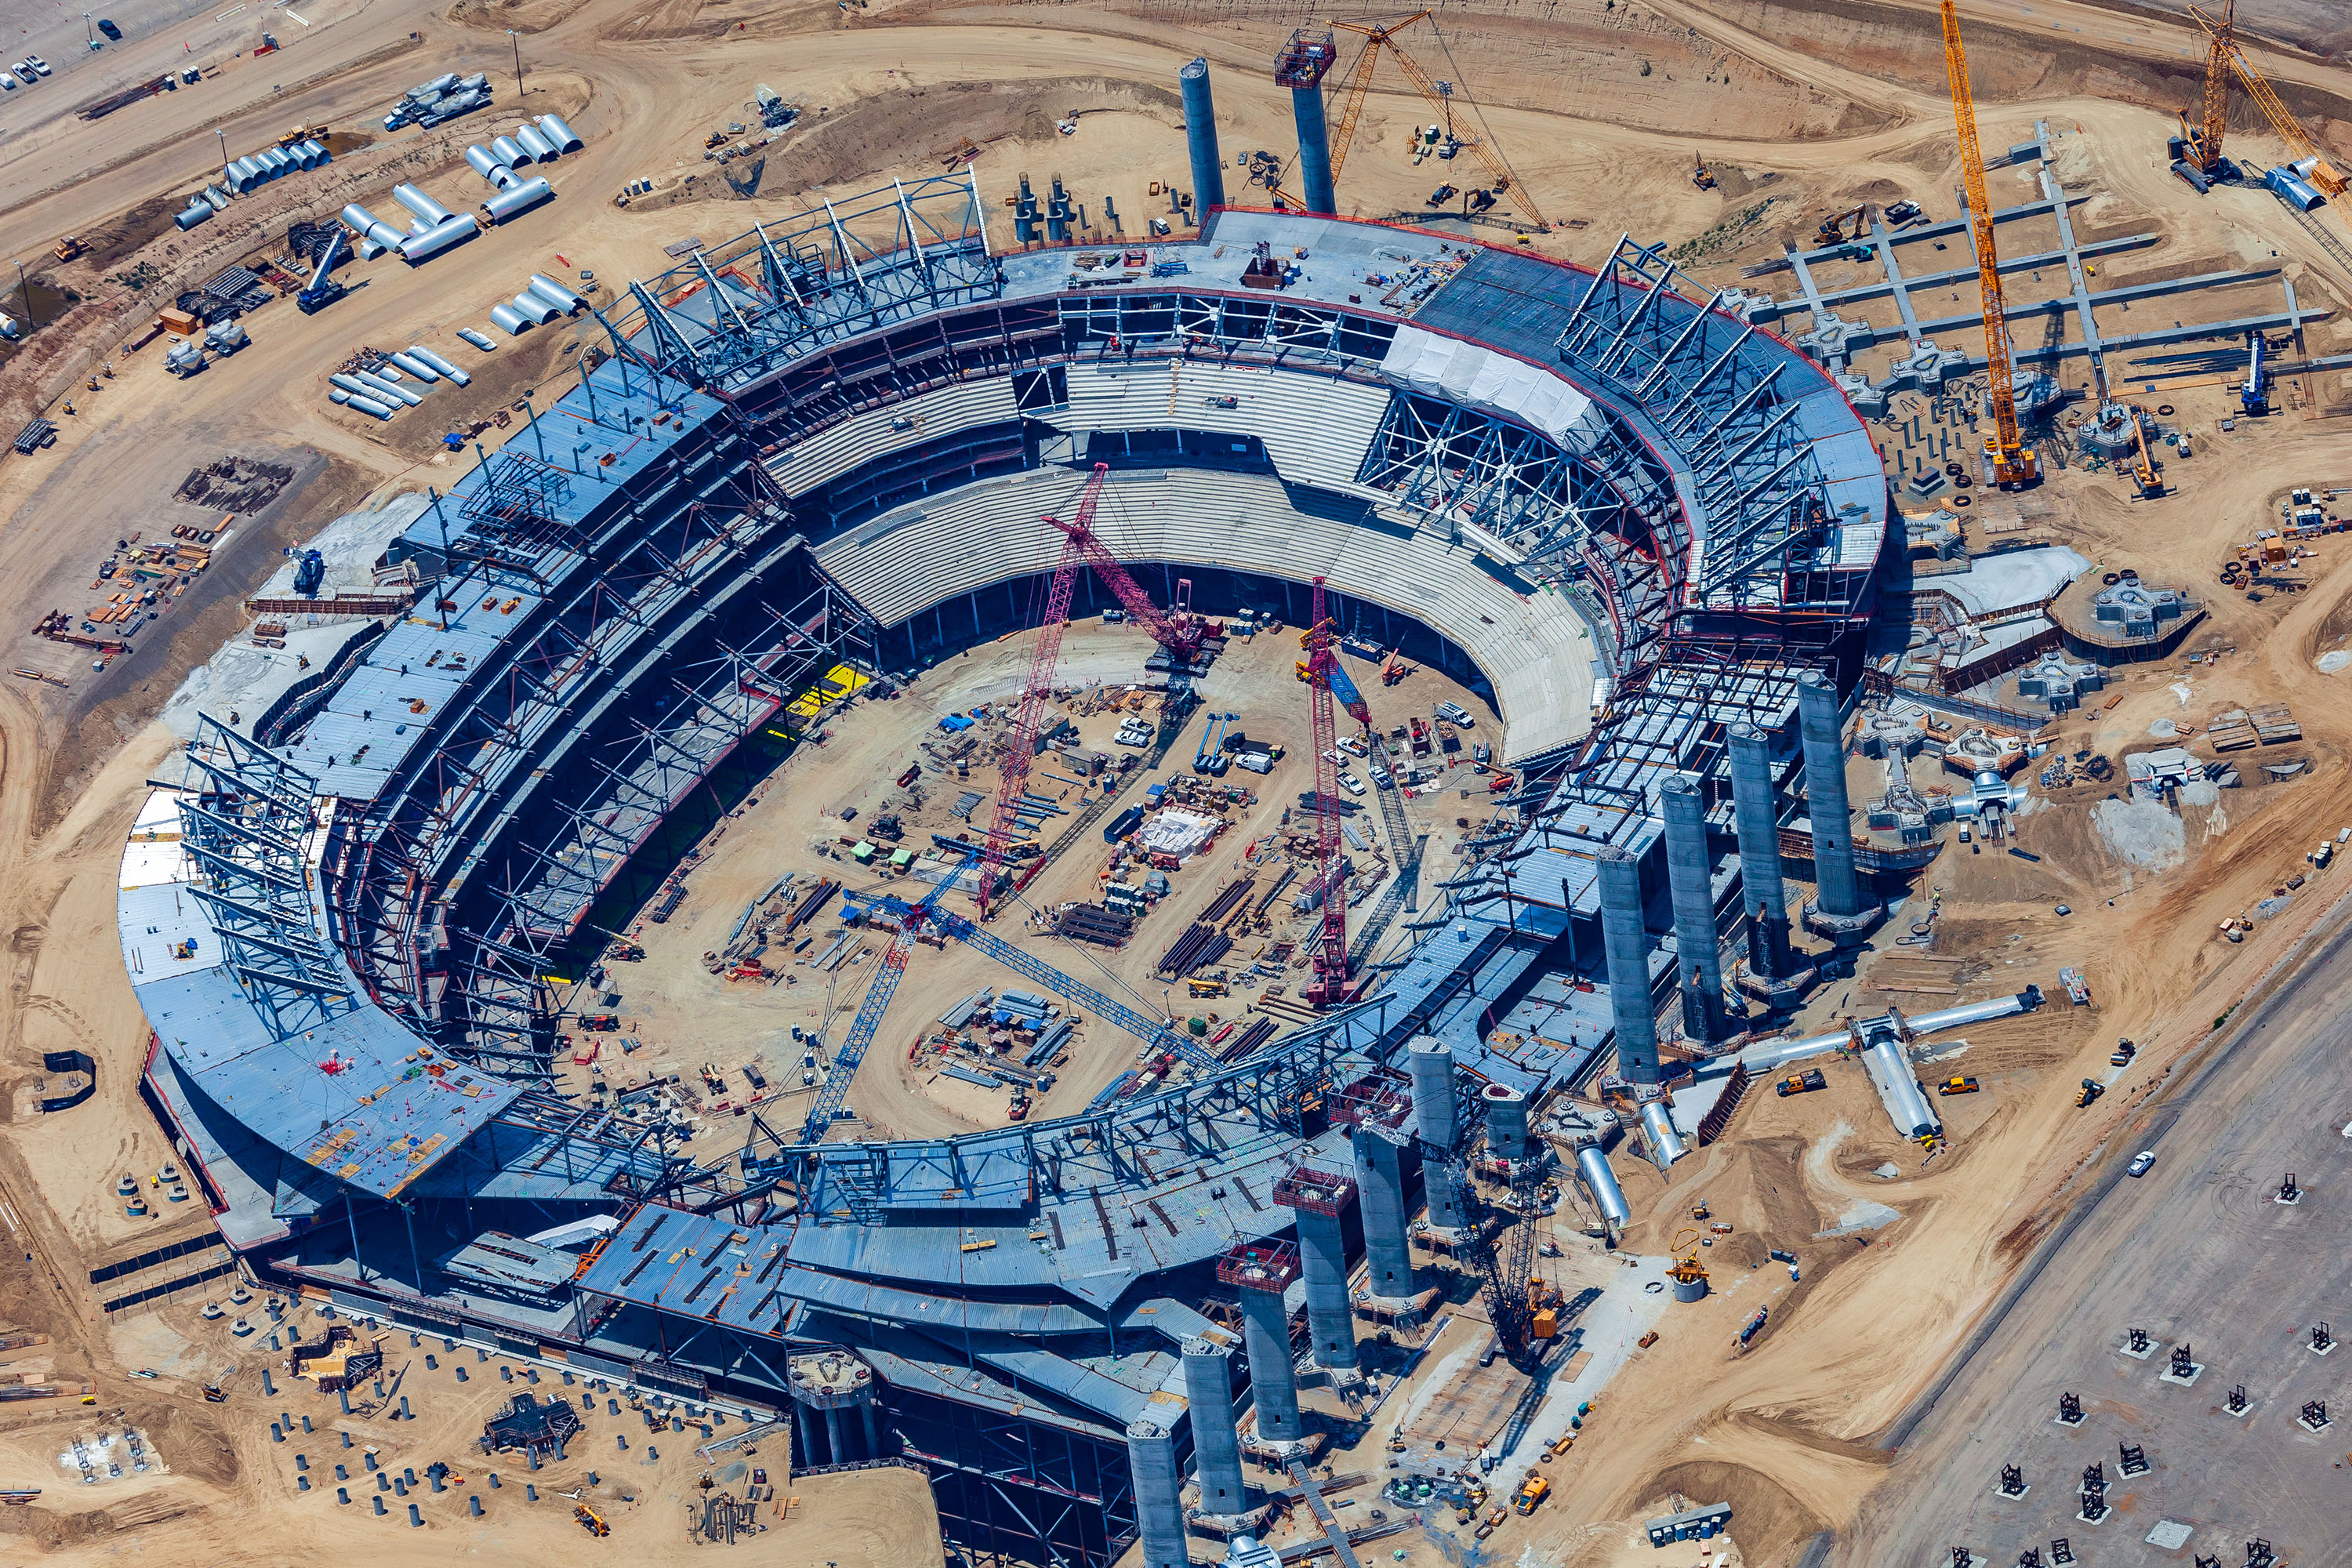 An aerial photo of the Rams and Chargers stadium under construction now in Inglewood.